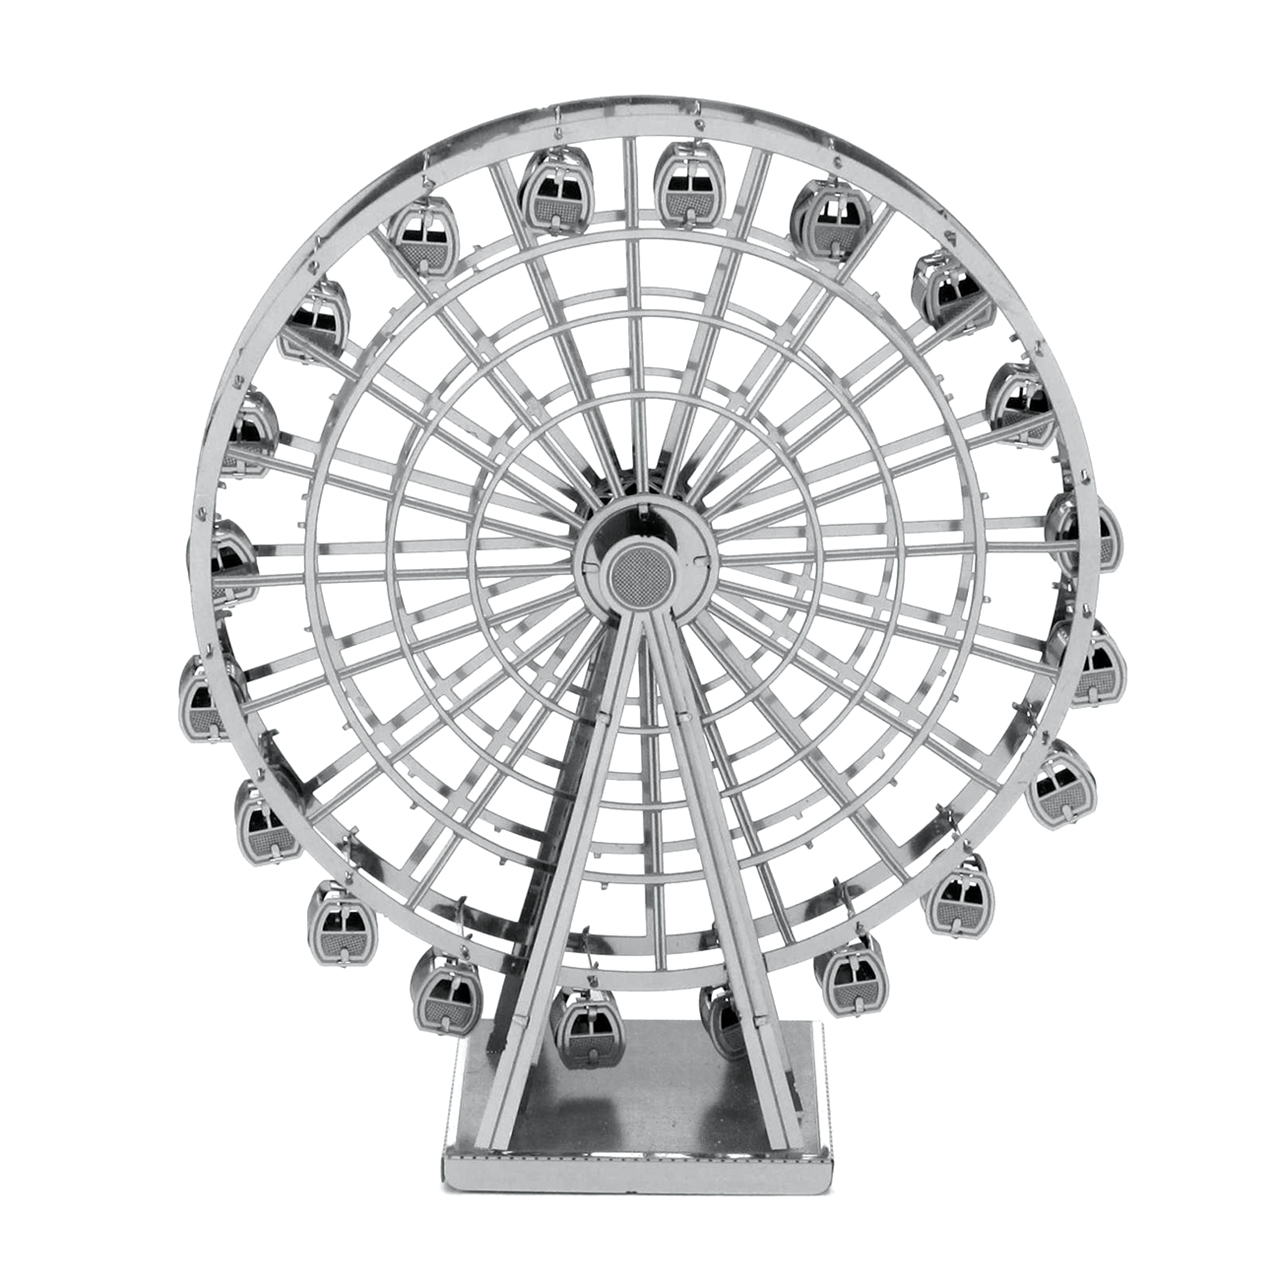 Fascinations metal earth 3d metal model diy kits unique gifts picture of ferris wheel biocorpaavc